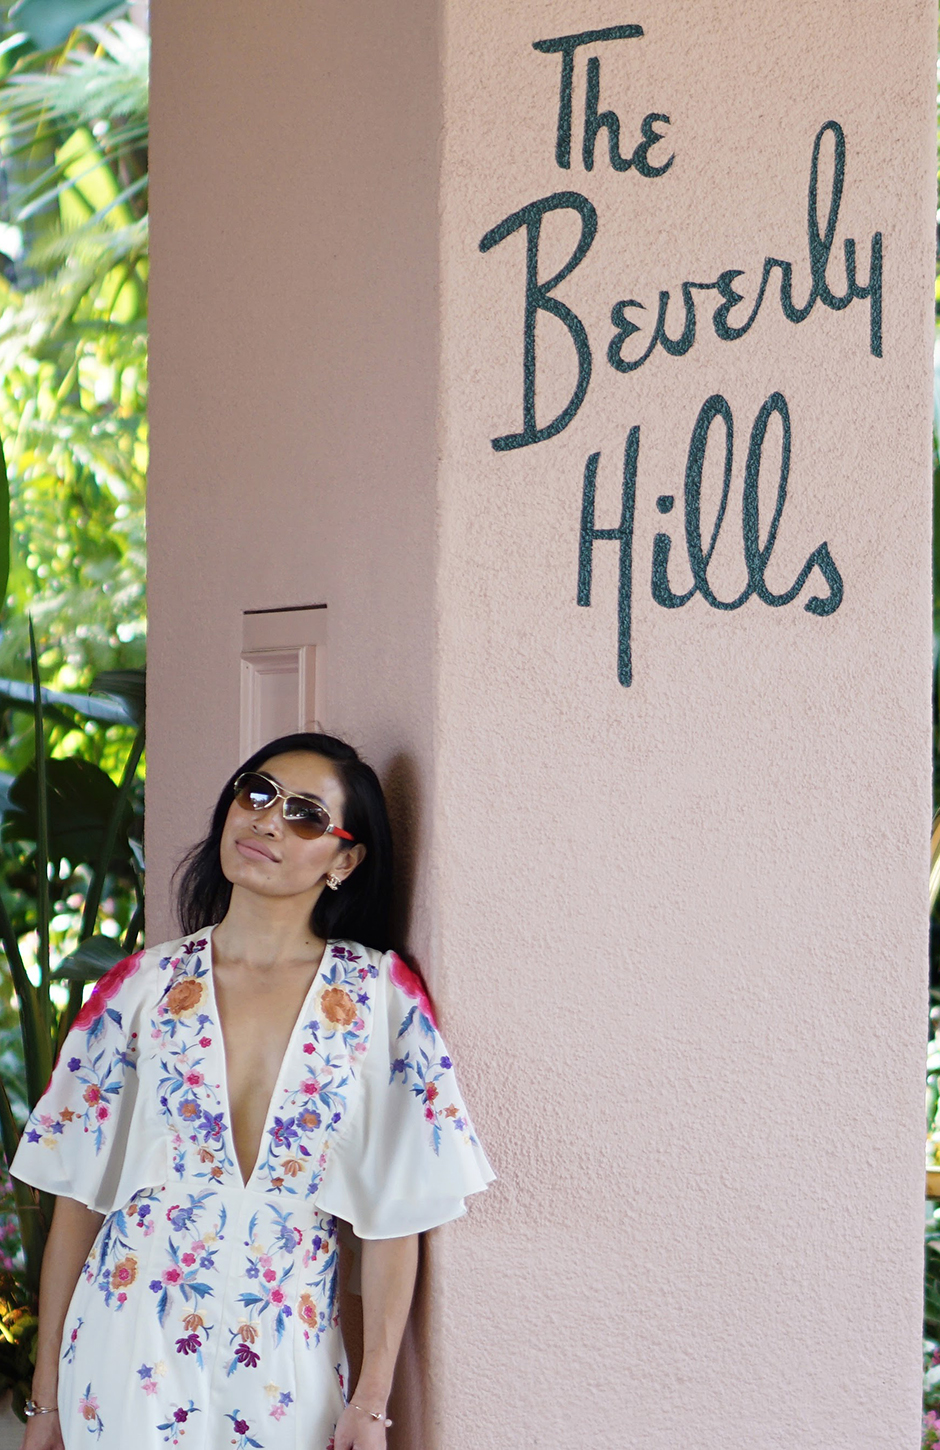 Beverly Hills Hotel Los Angeles Instagrammable Spots California #topinstagrammablespots #fashionblog #styleblog #scenicspots #visitcalifornia #california #losangeles #lalife #santamonica #venicebeach #socal #graffitiwalls #fashionblogger #ootd #photogenicspots #beverlyhills #hollywood #westhollywood